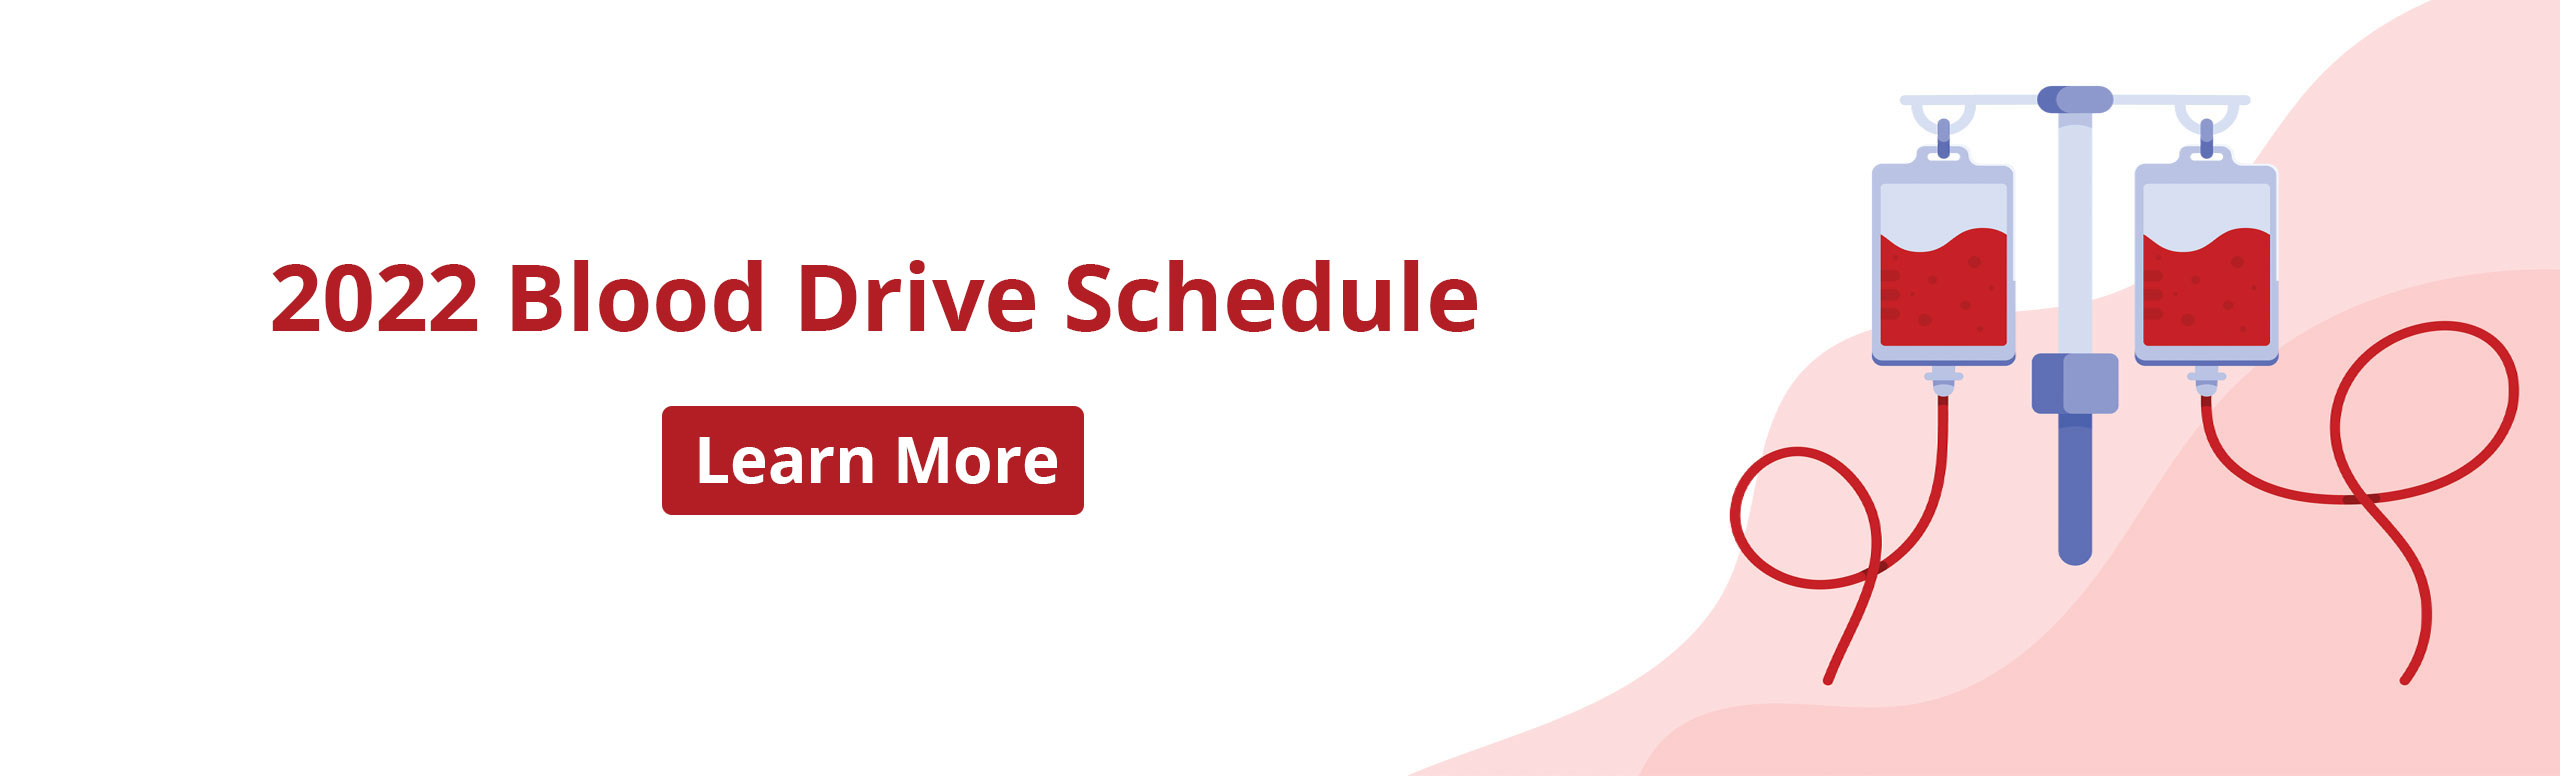 Blood Donation Drive April 15, 3pm - 7pm  Mariposa County Parks & Recreation, 4998 County Park Rd, Mariposa  Sign up Today